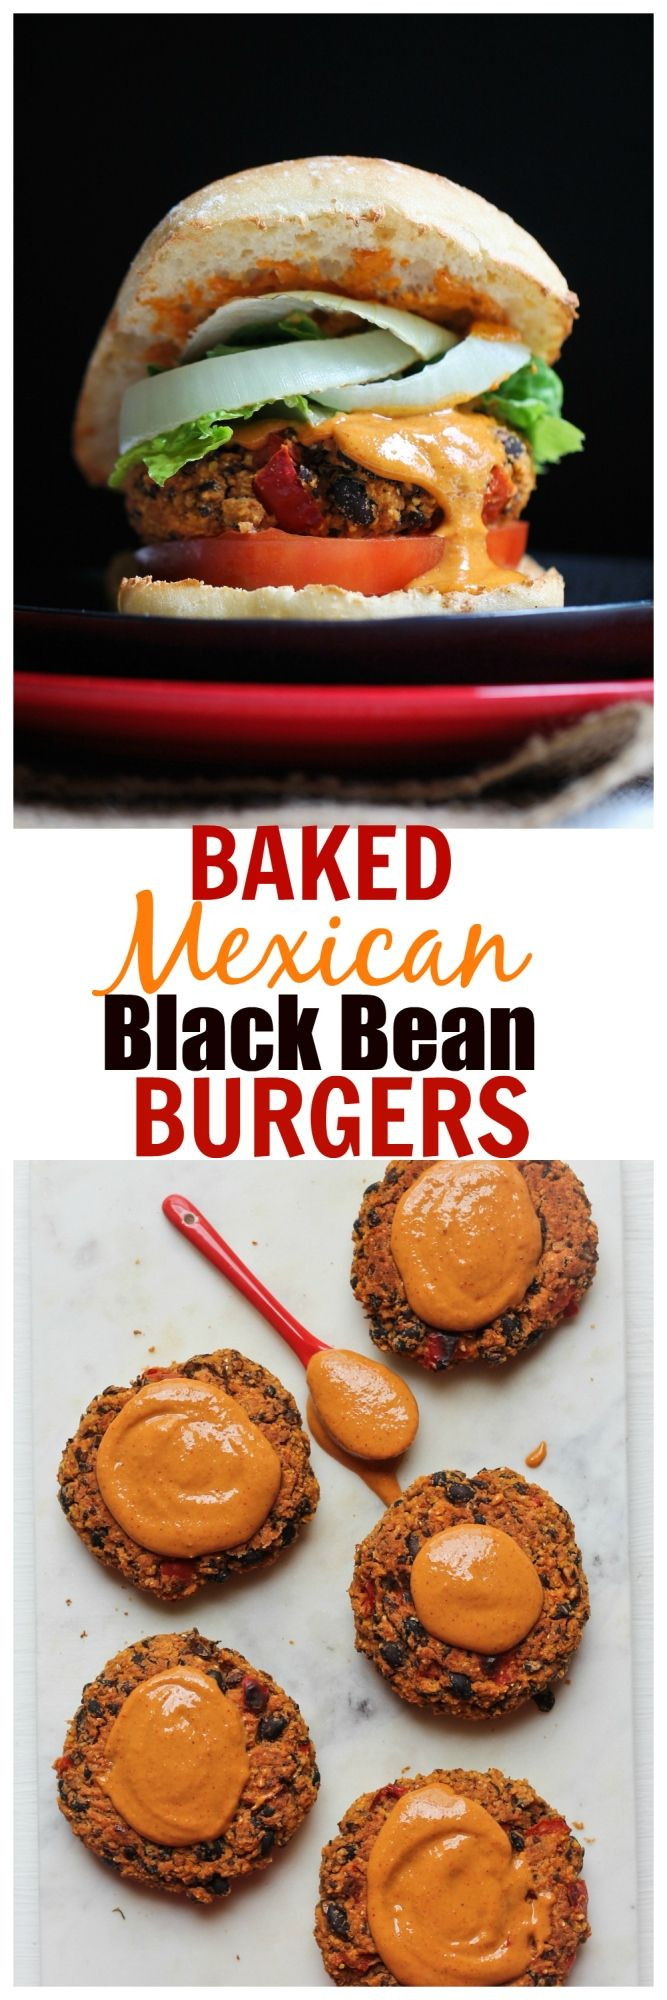 Low Fat Mexican Recipes  Best 25 Fat free recipes ideas on Pinterest